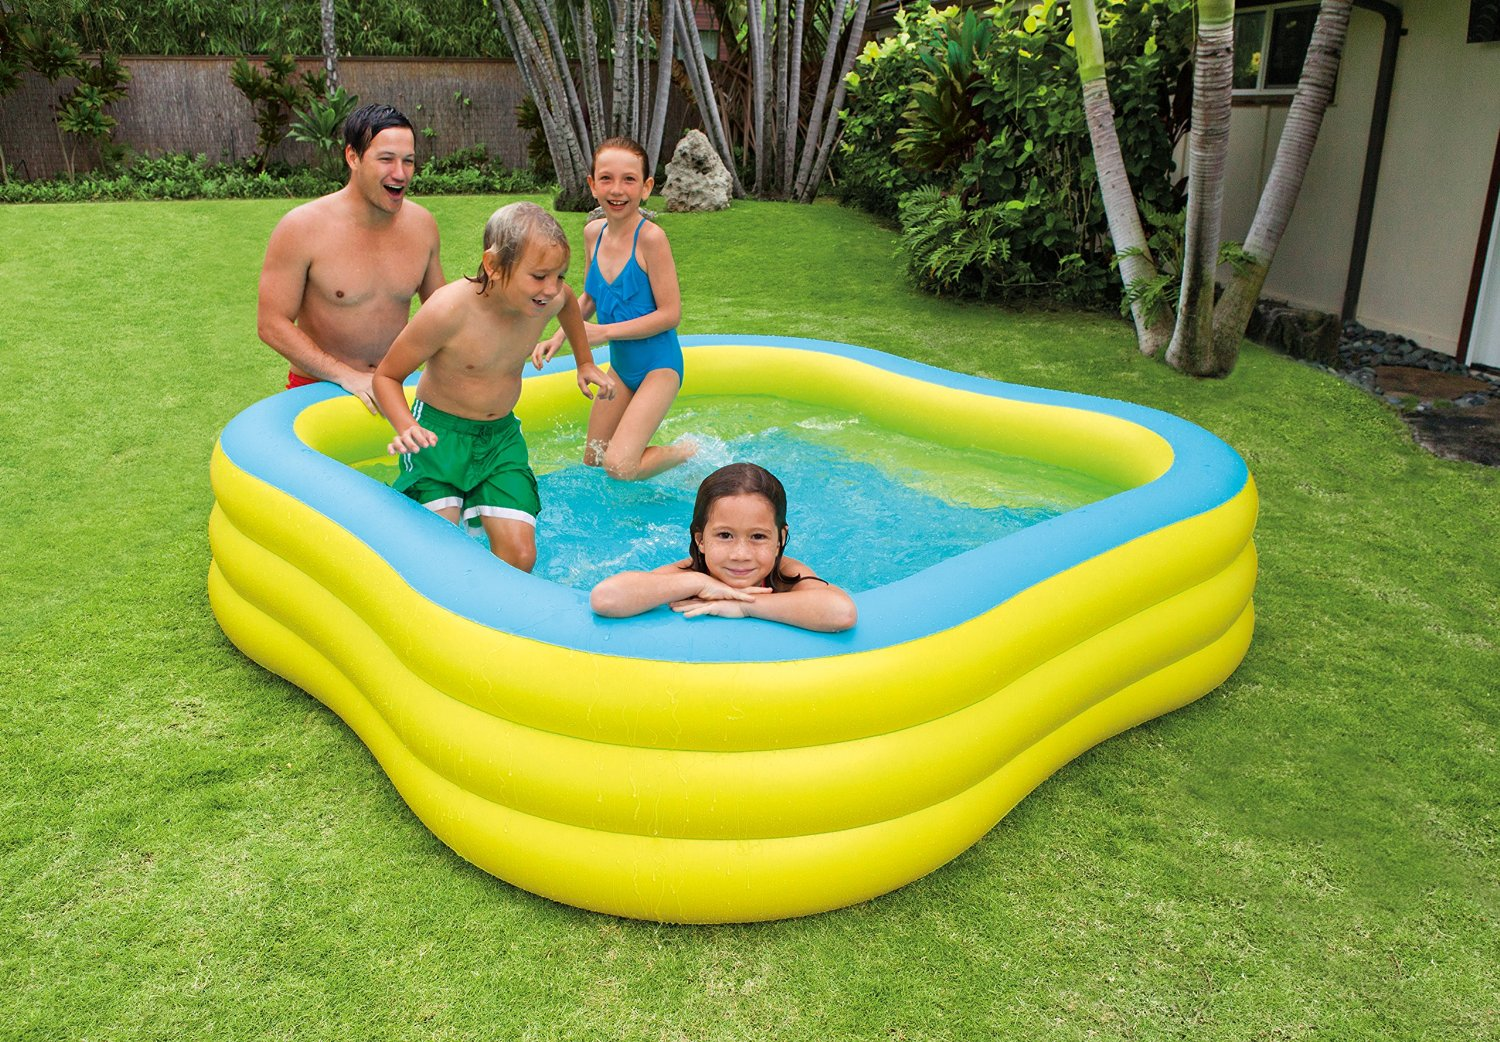 Piscine gonflable carr intex wave swim center pool for Intex piscine